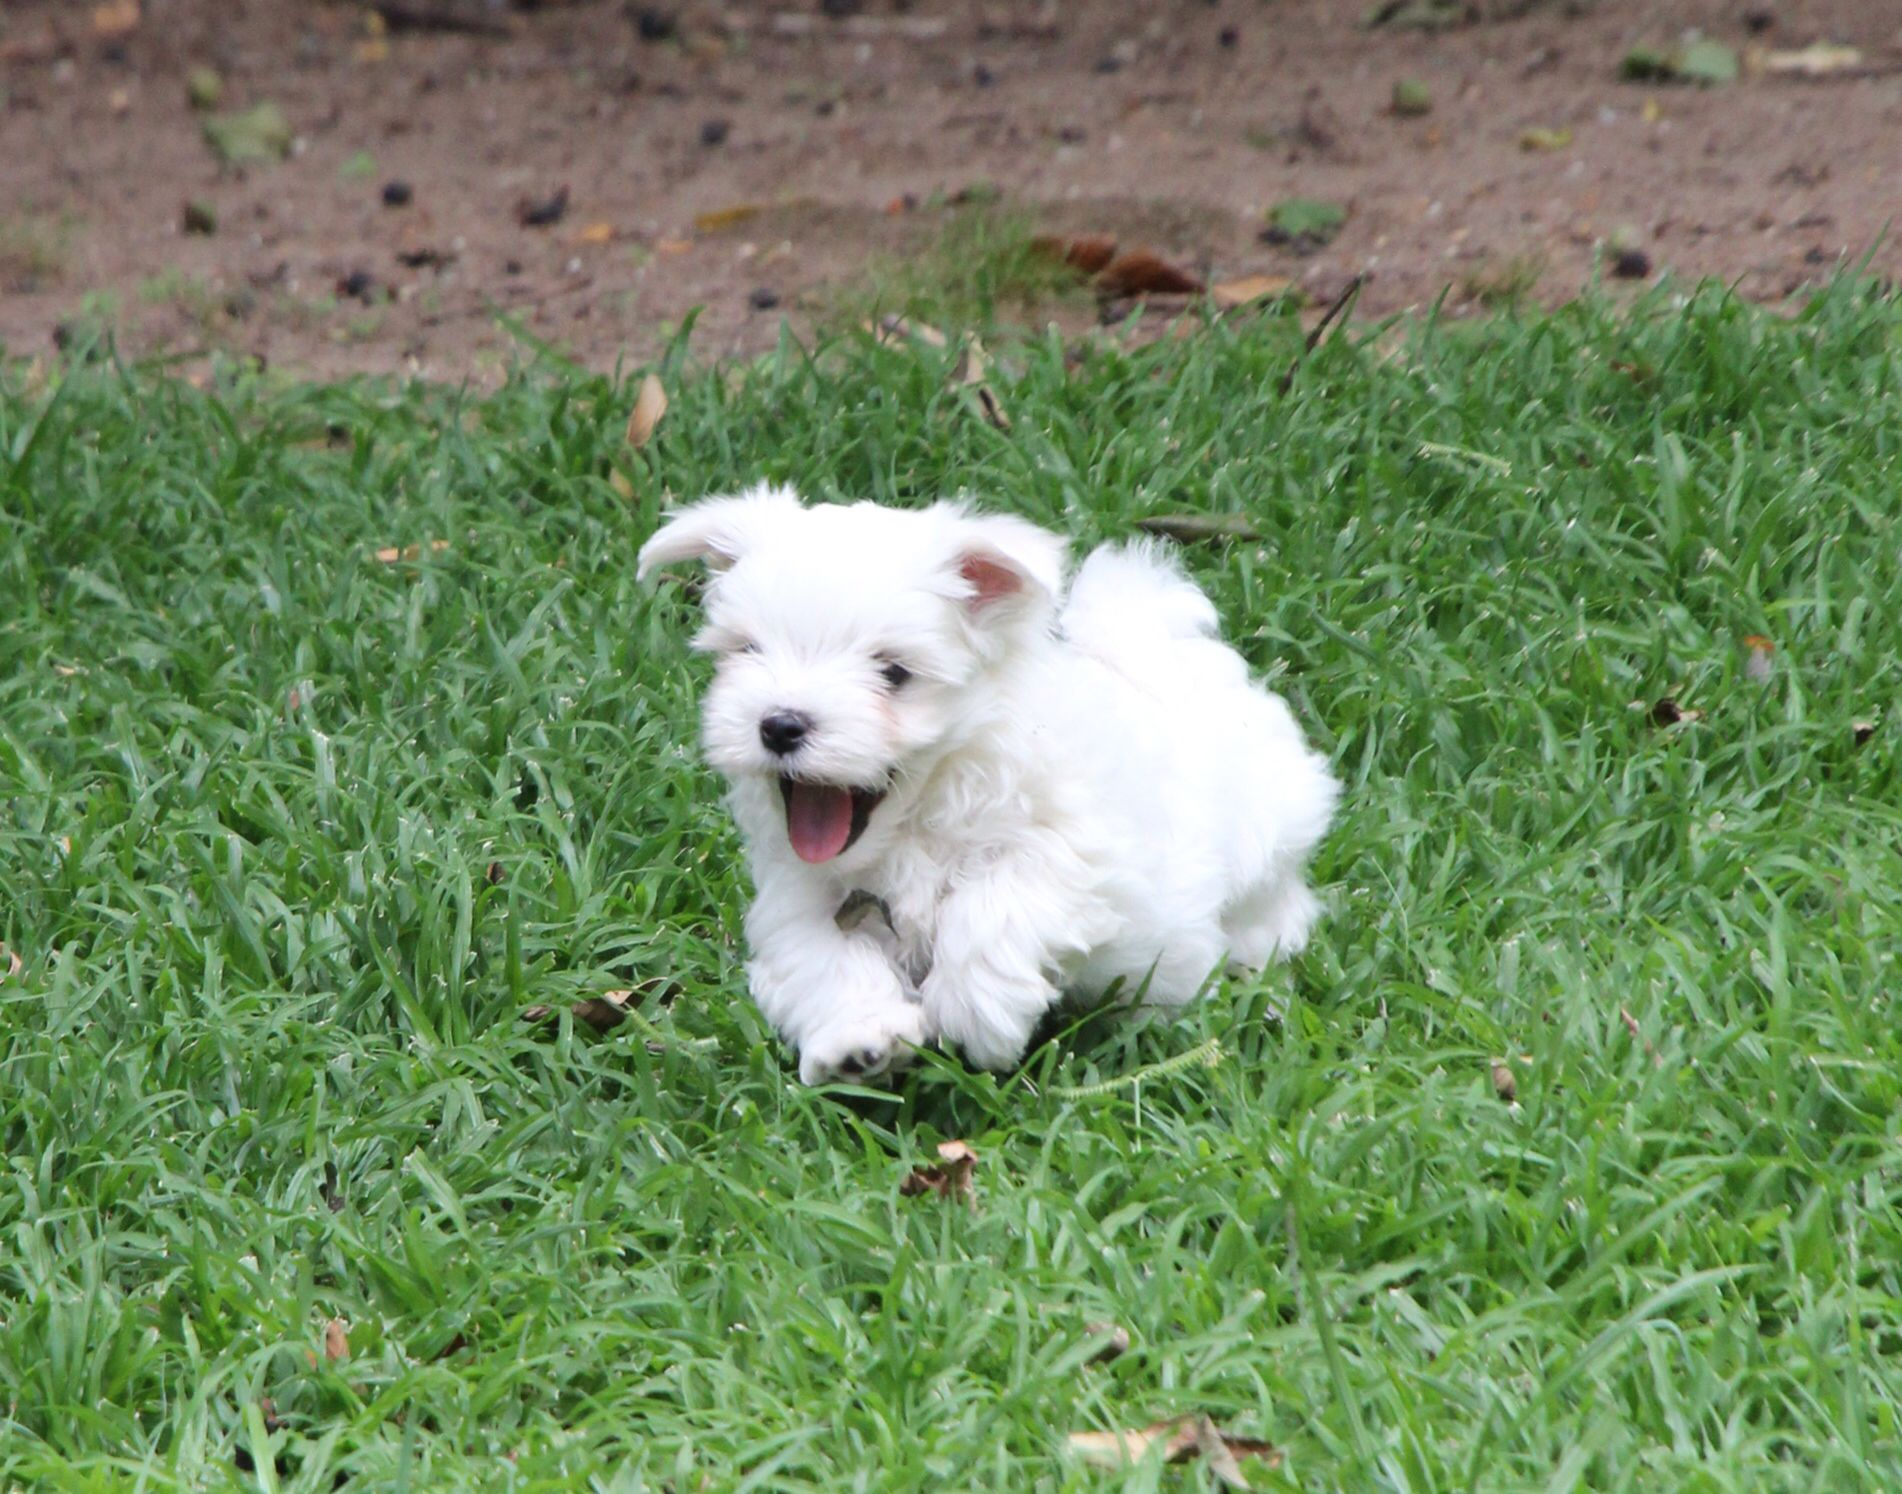 Maltese Puppy Going For A Run Adorable Cute Happy Outdoors Puppy Cheerful Maltese Fun Fluffy Puppies Puppies Maltese Animals